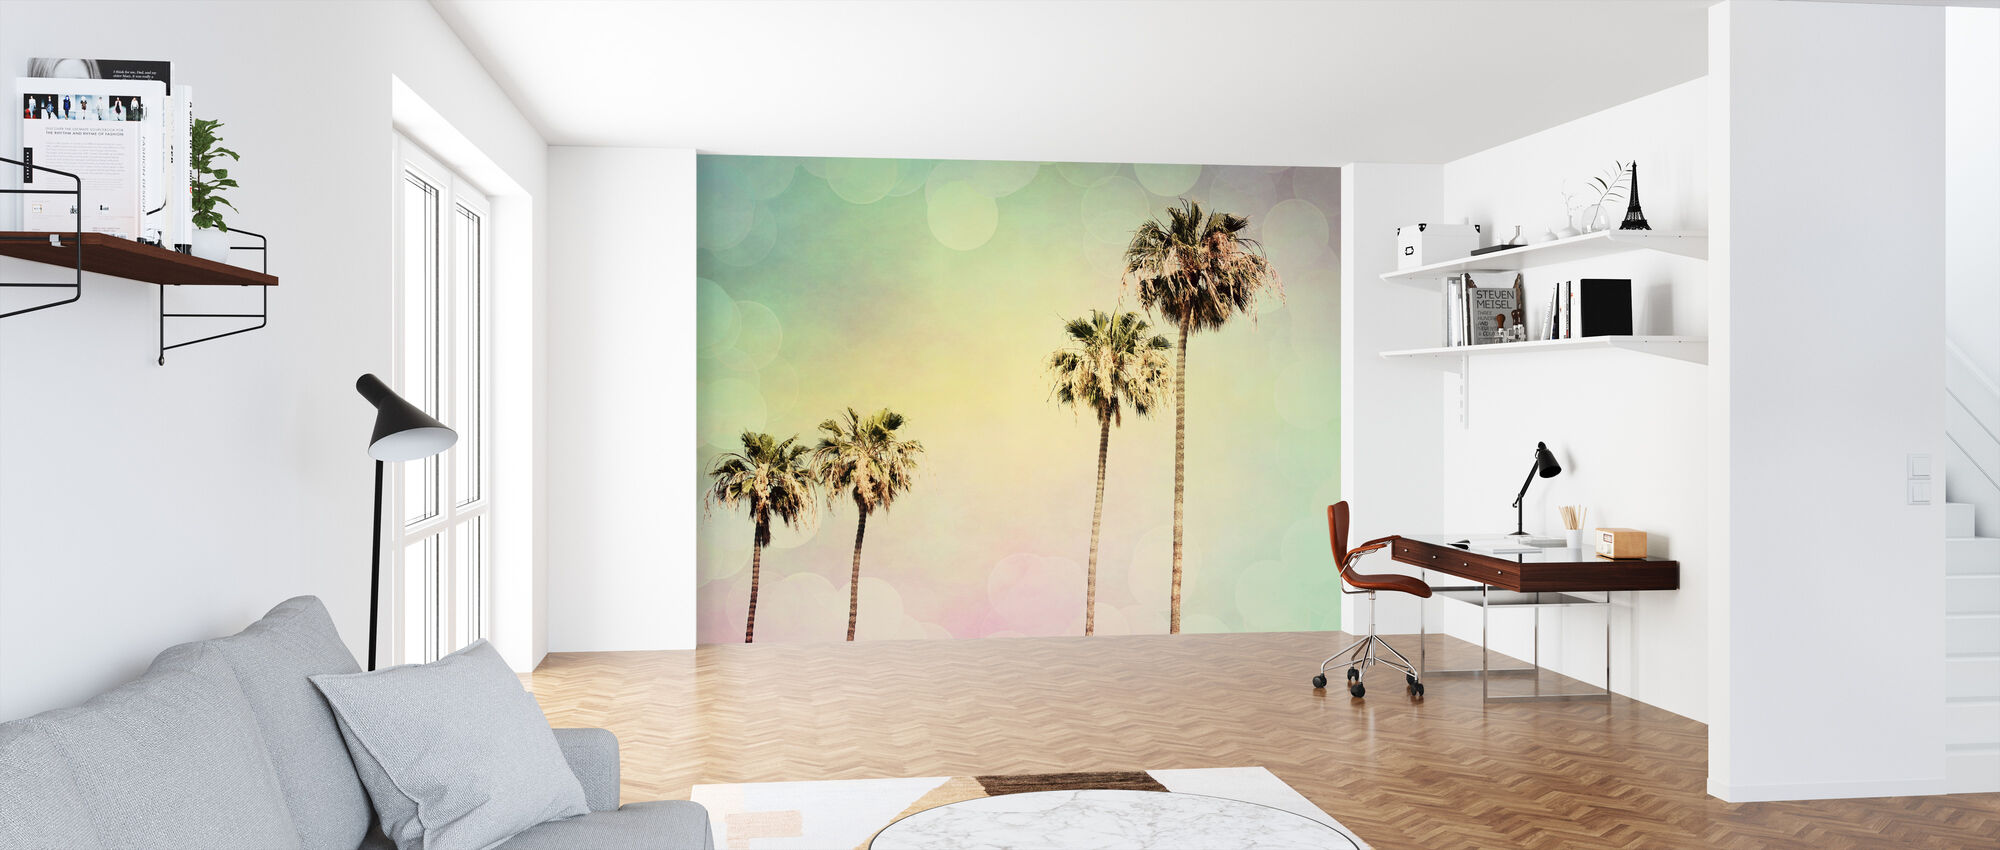 Palm Trees II - Wallpaper - Office